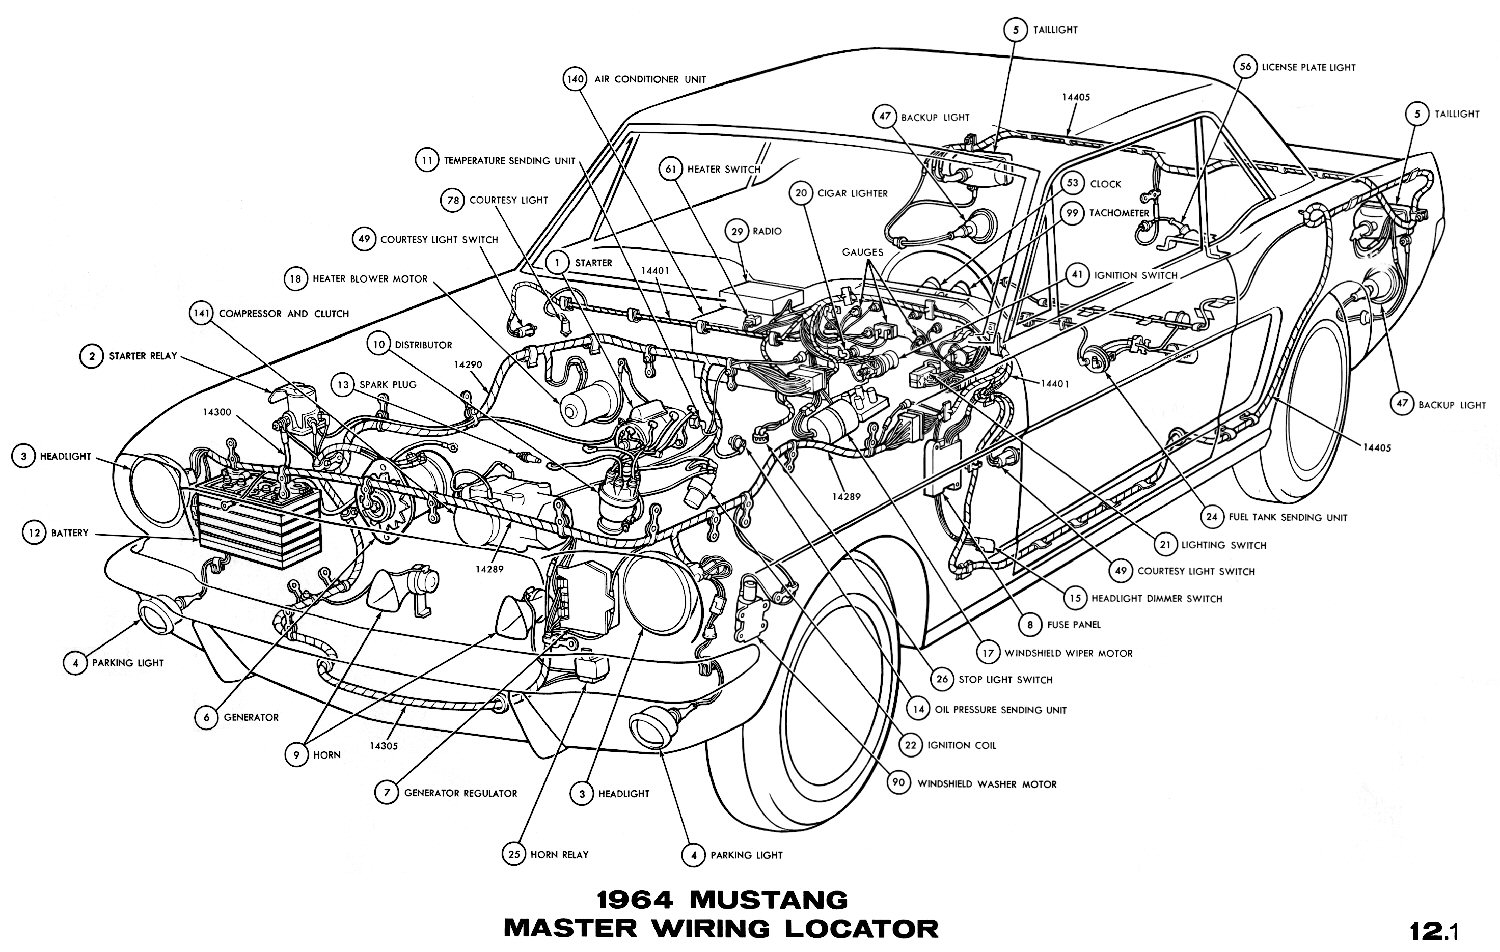 1964 Mustang Wiring Diagrams Average Joe Restoration Backup Light Schematic Master Pictorial